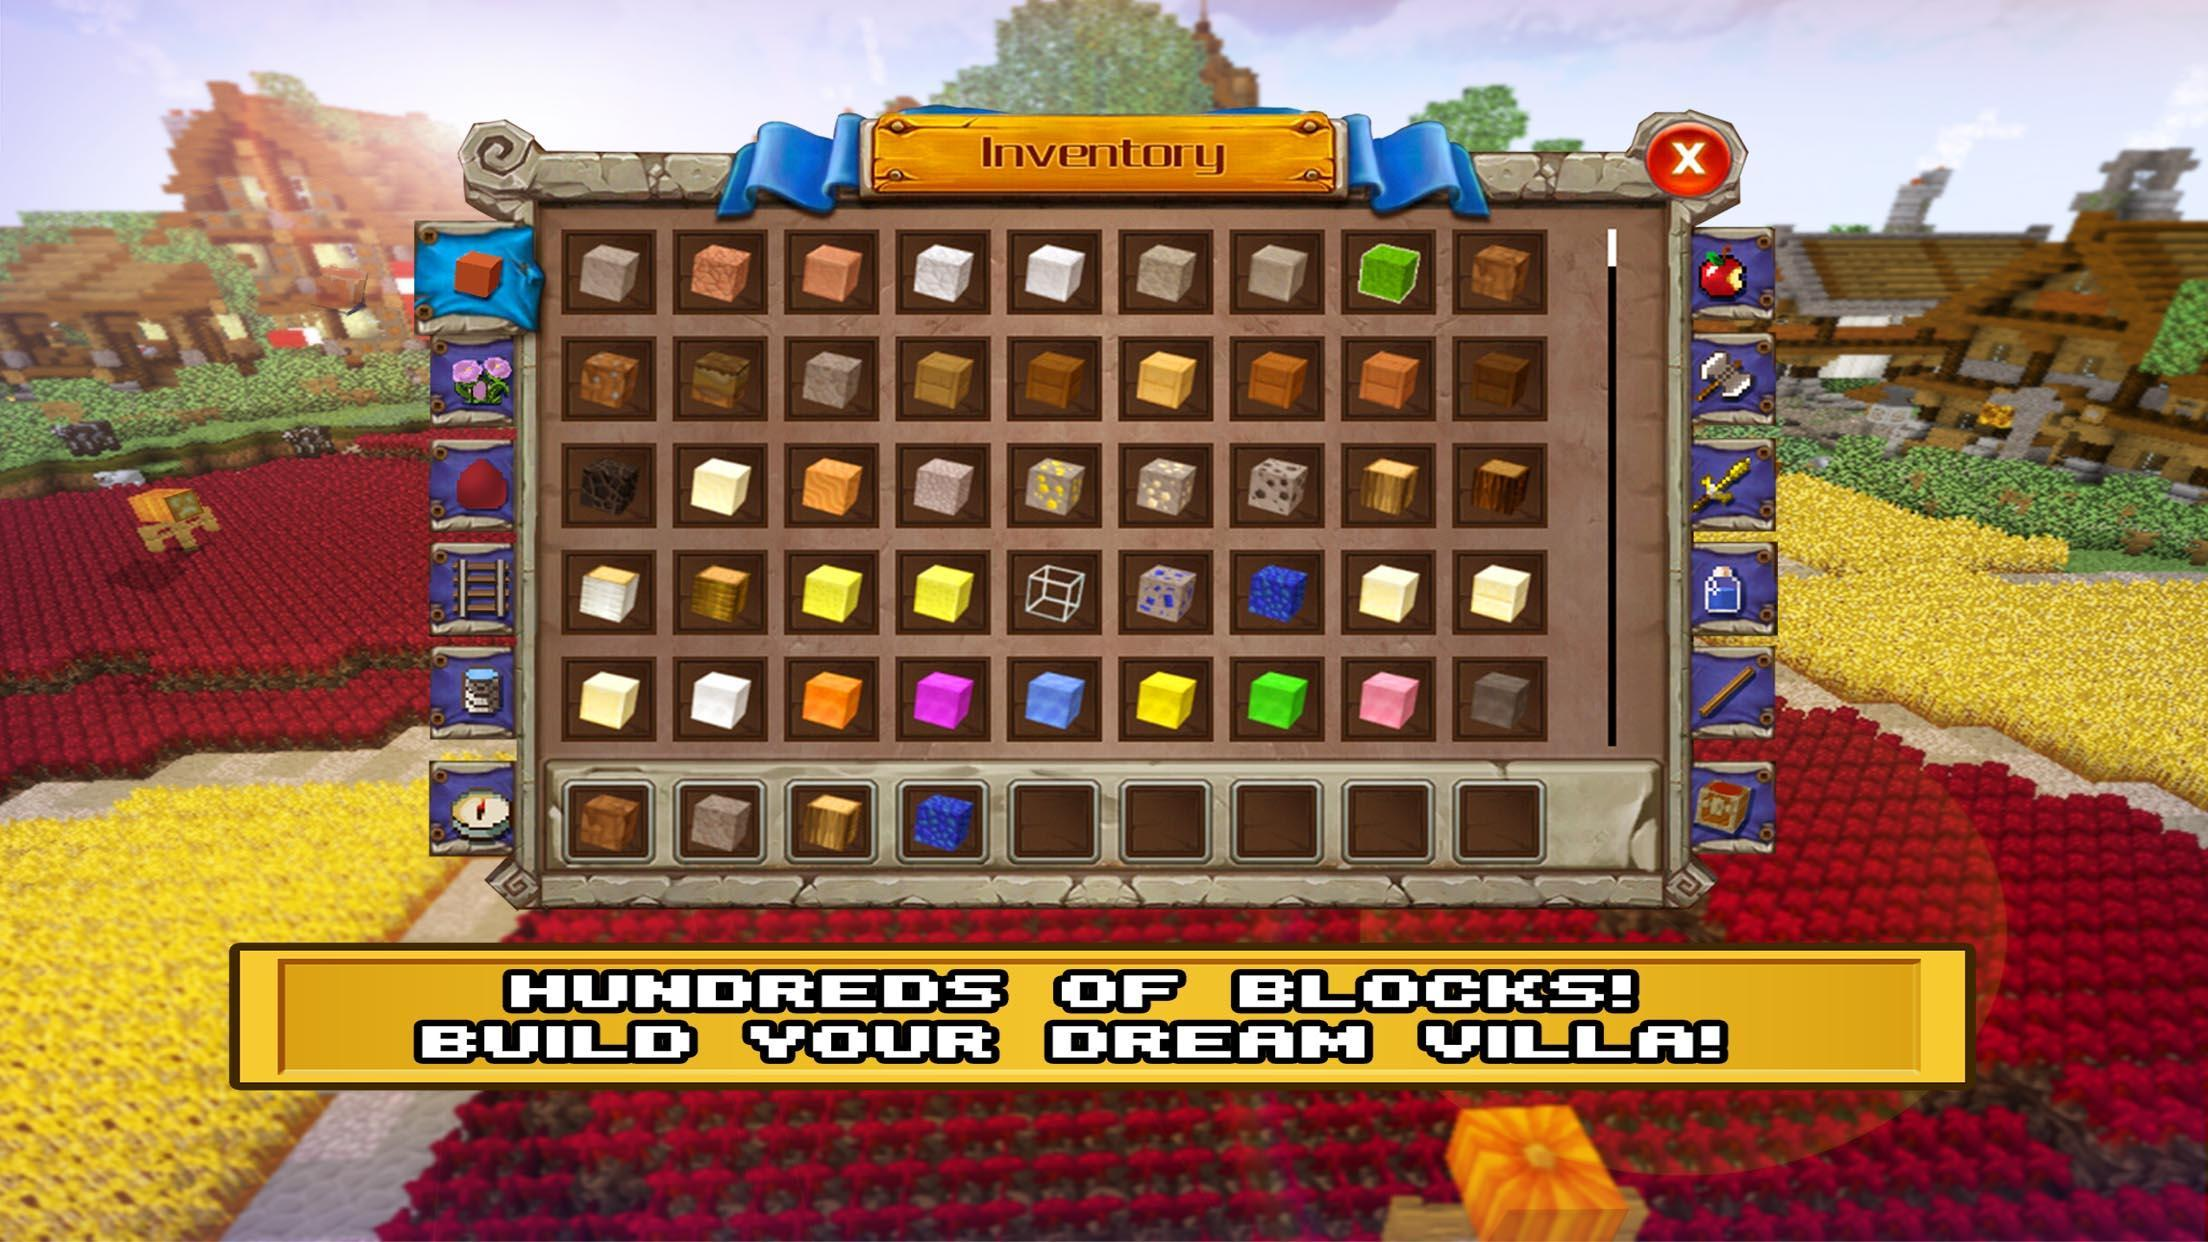 Multicraft Miner Exploration for Android - APK Download